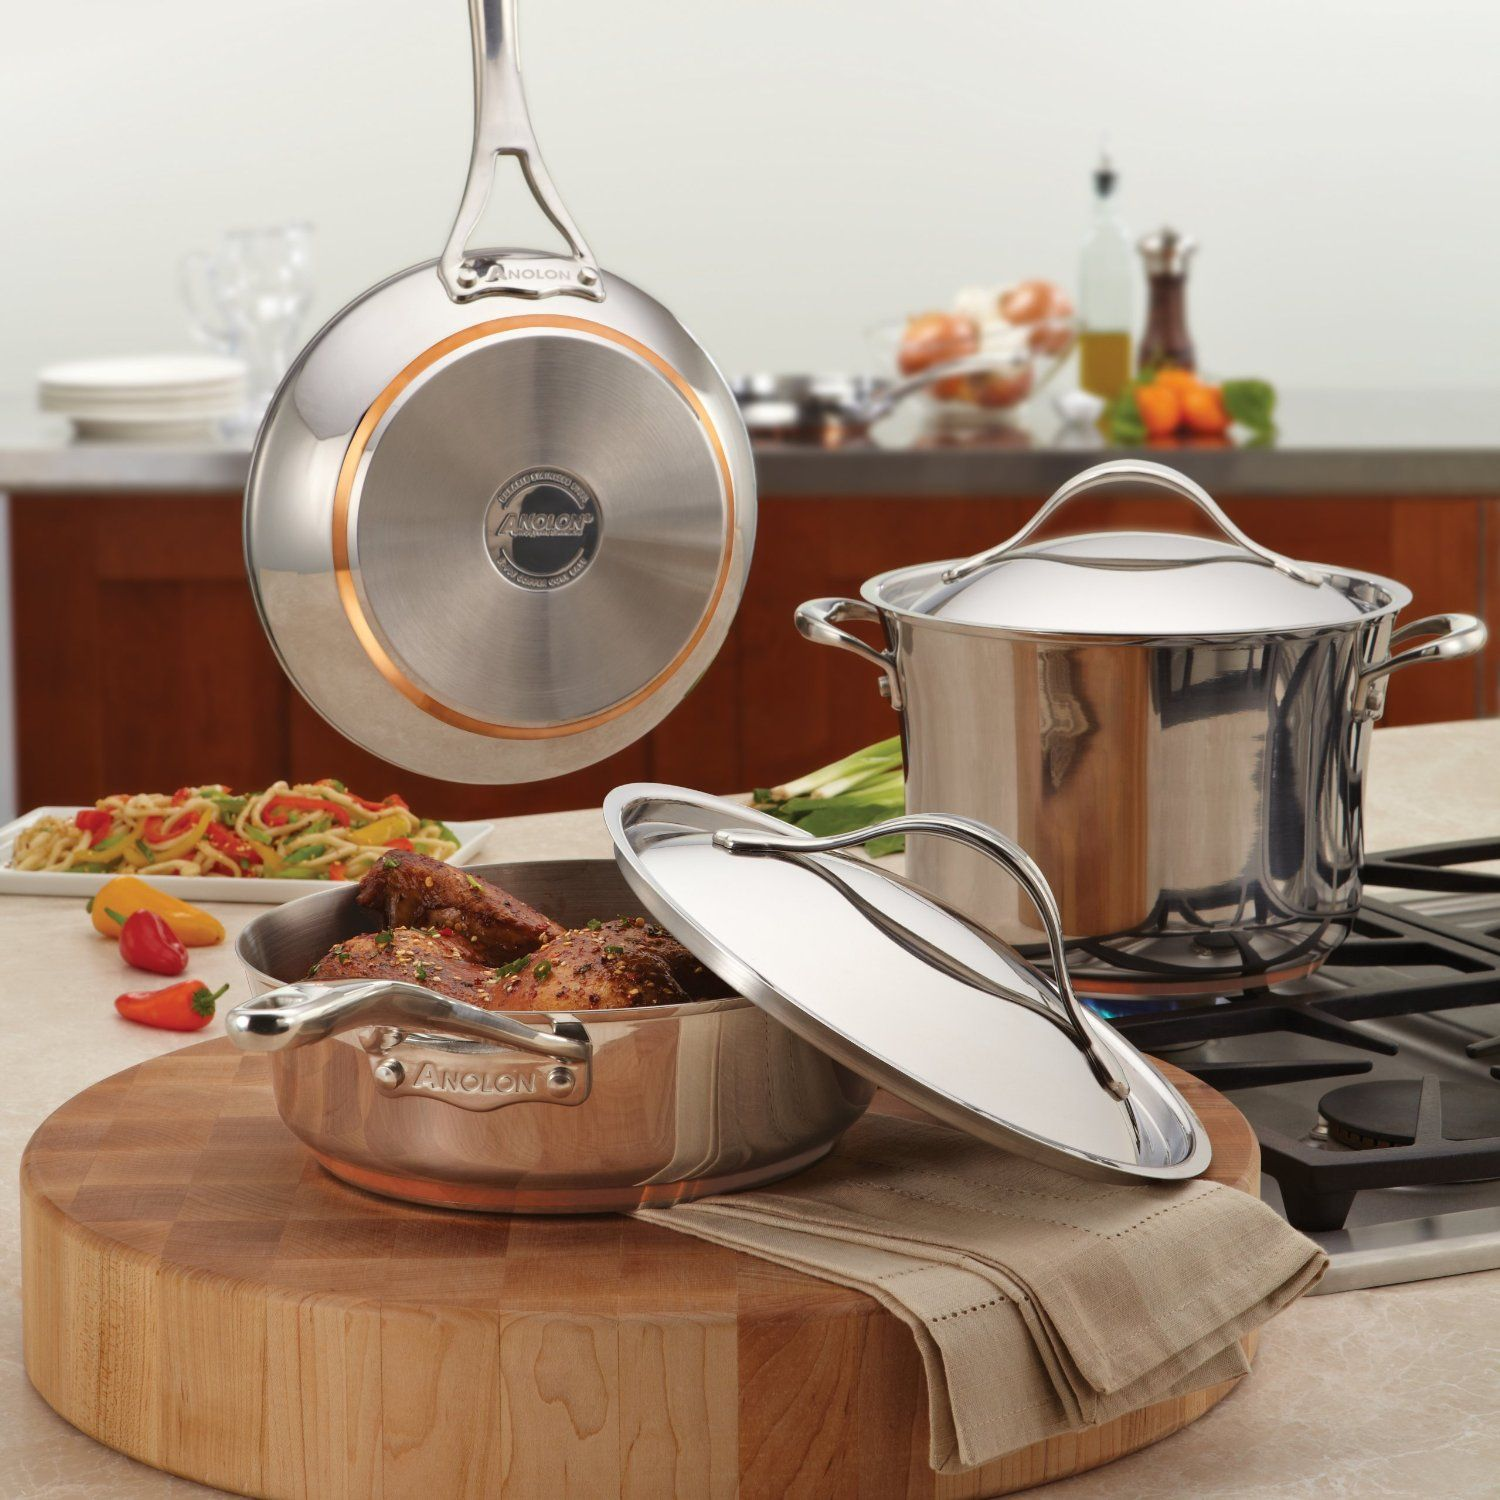 Anolon nouvelle copper stainless steel 312quart covered